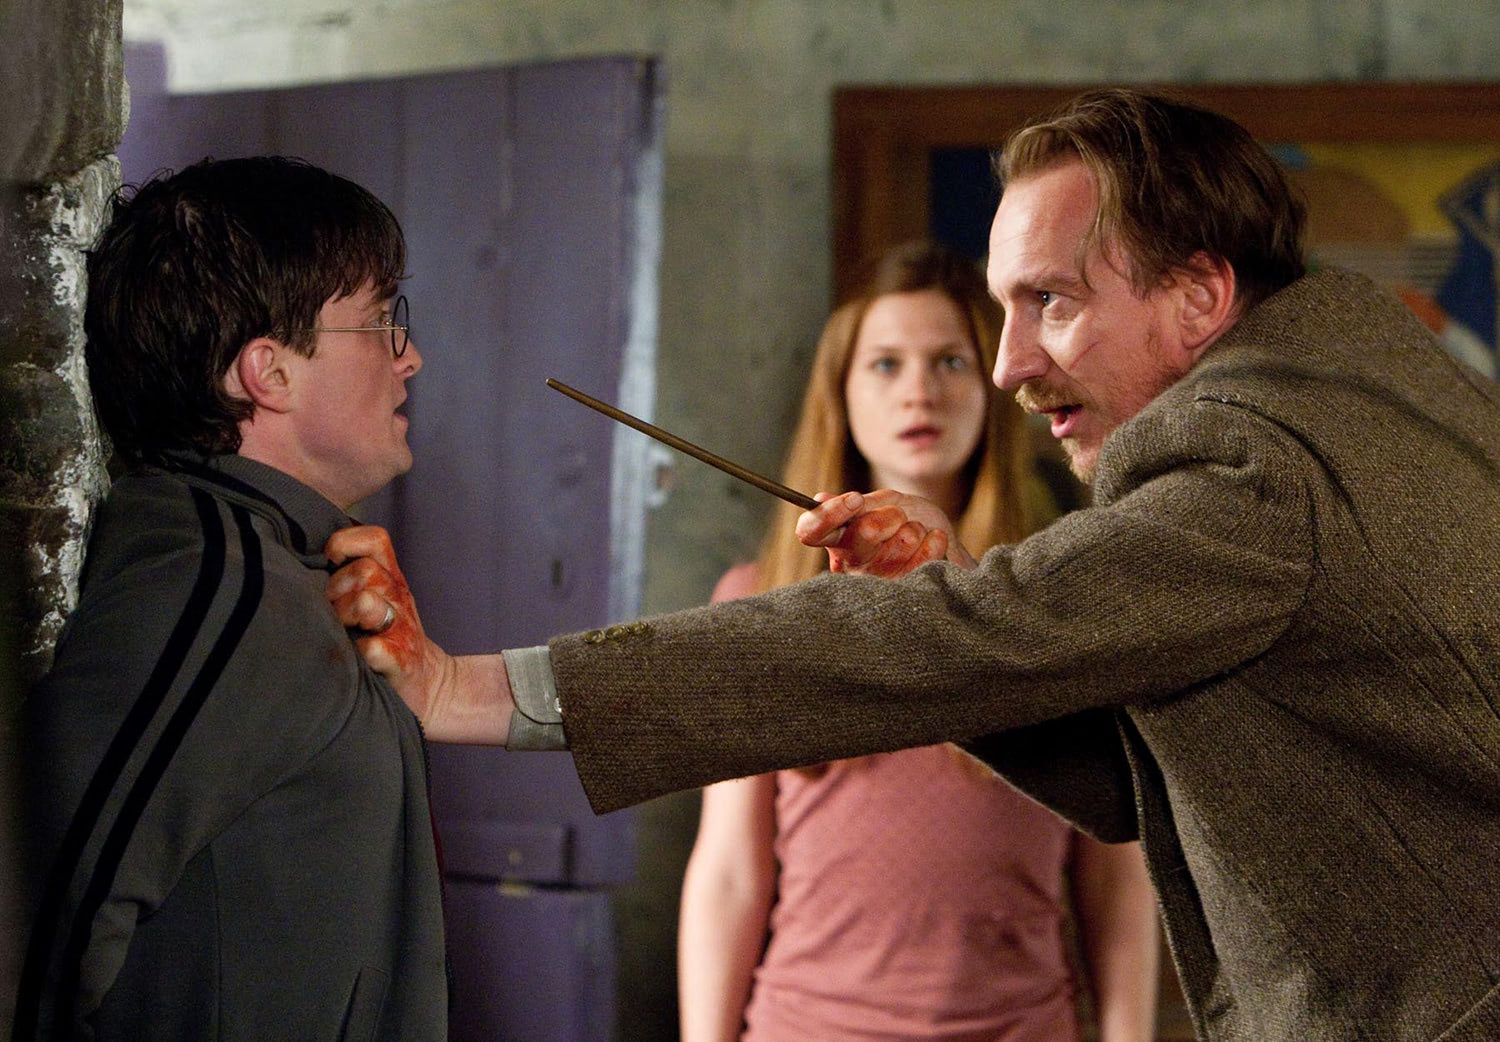 Remus Lupin interrogates Harry